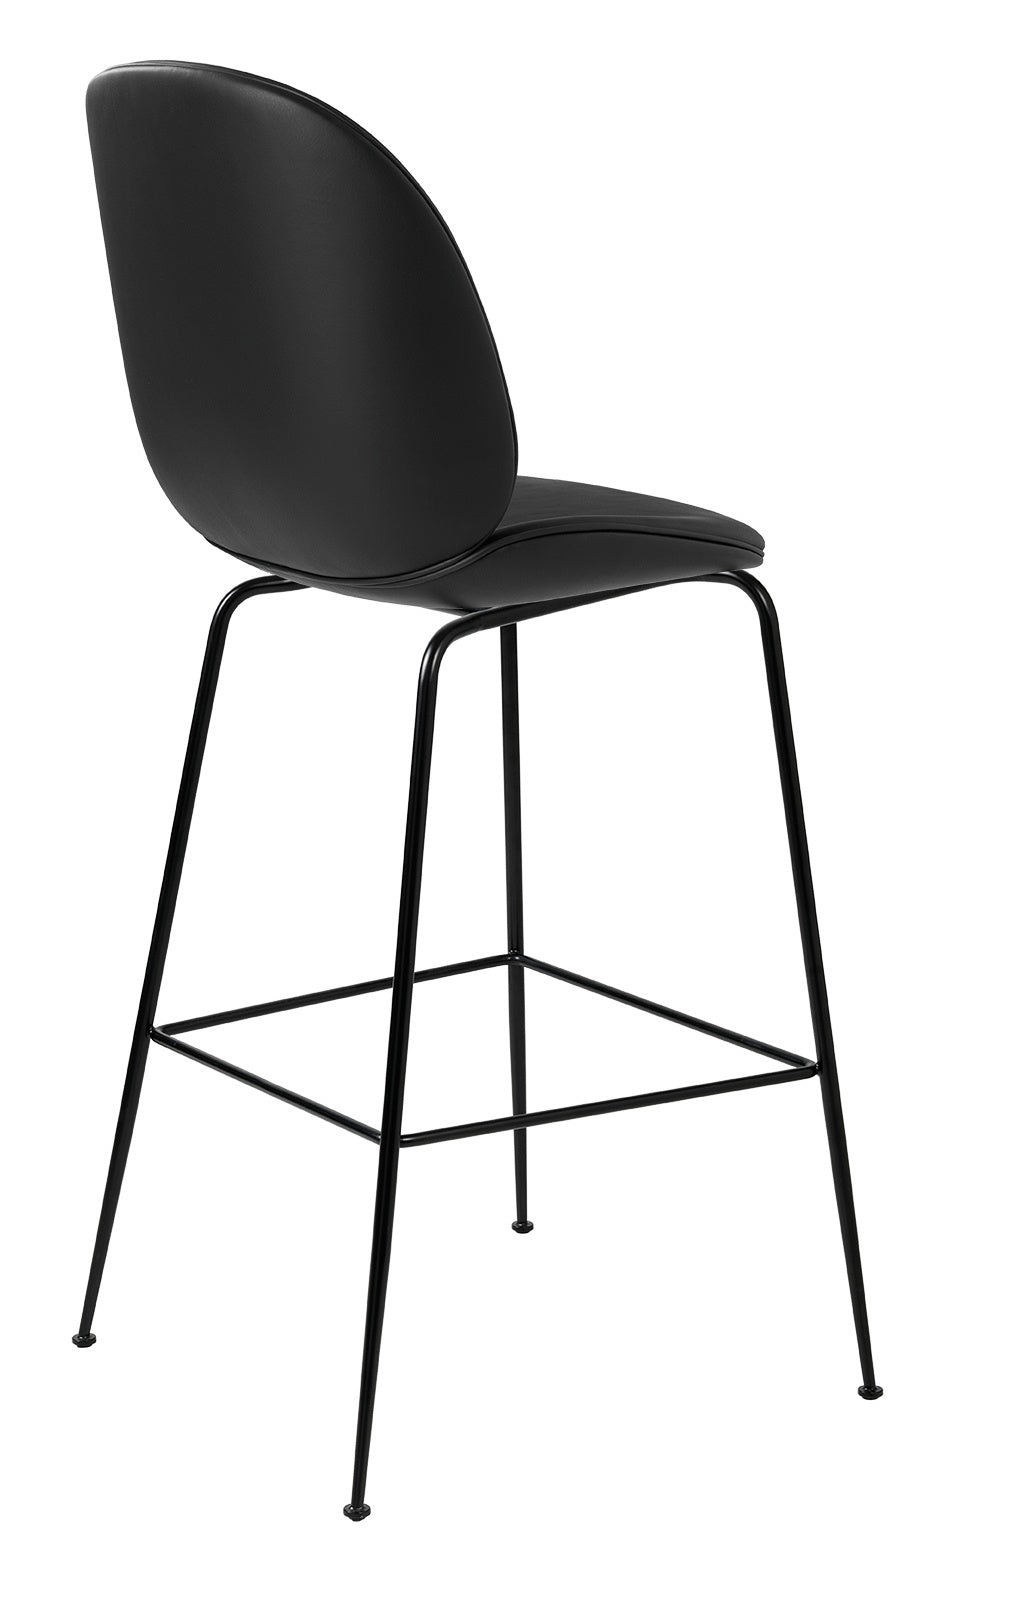 GUBI BEETLE STOOL - Eclectic Cool  - 5